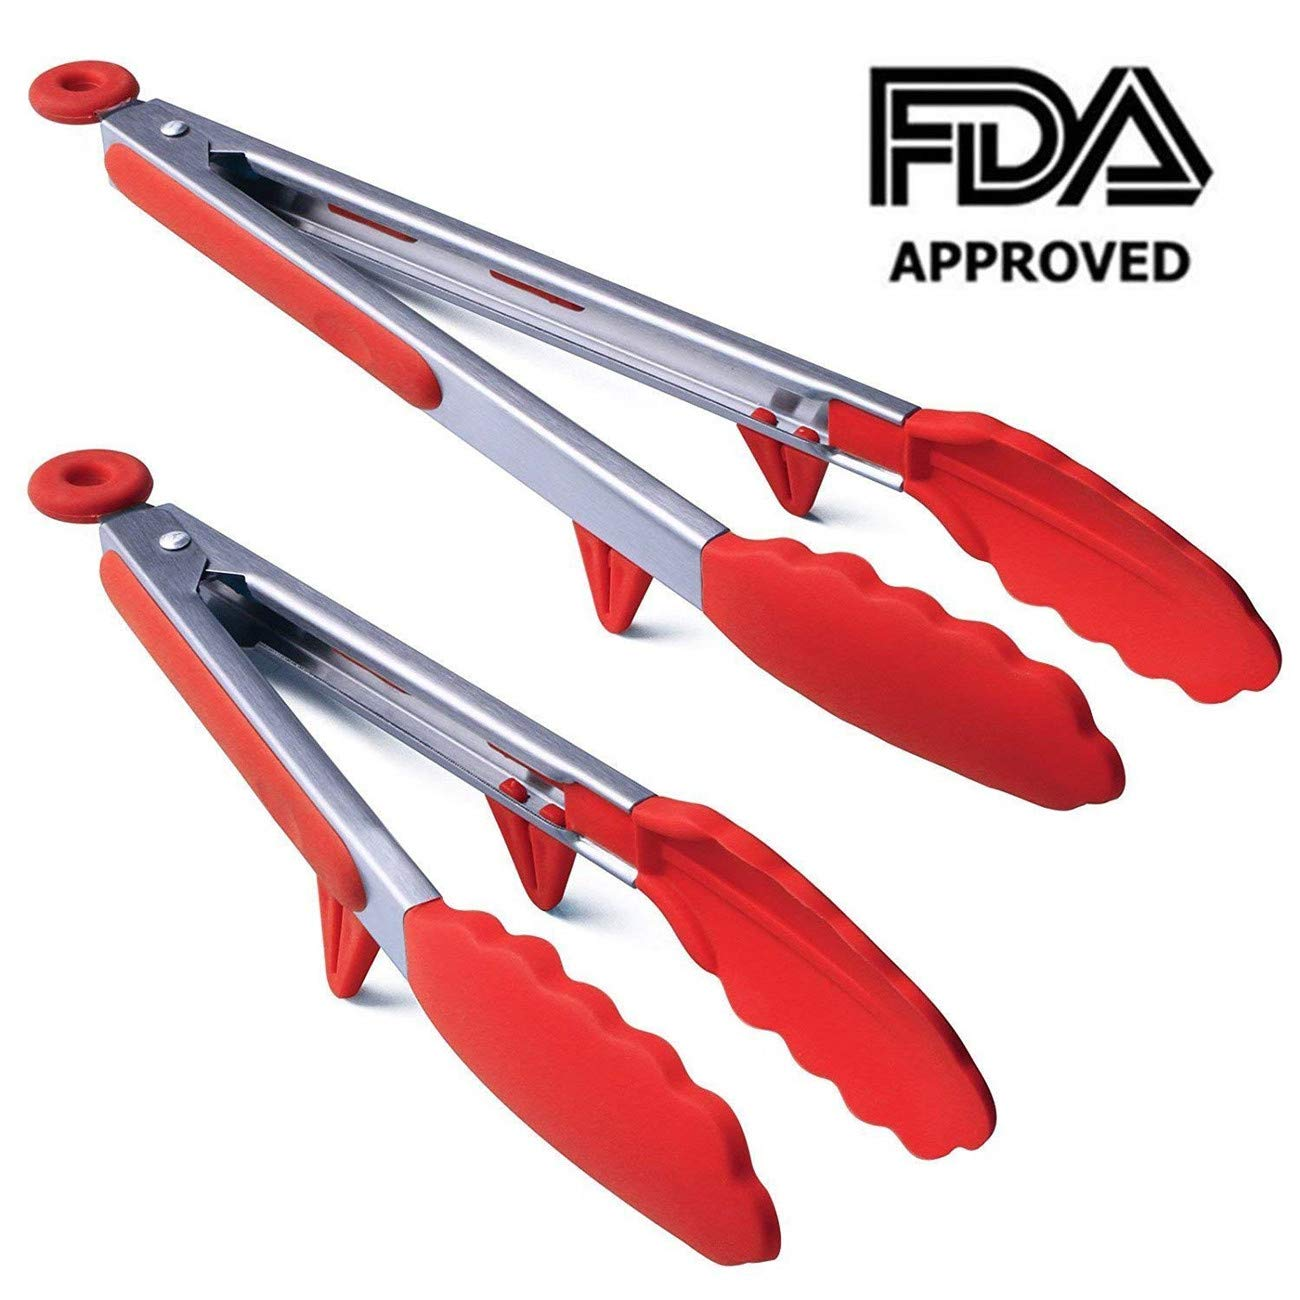 Products Premium Silicone Kitchen Tongs 2 Pack (9-Inch & 12-Inch) Stainless Steel Non-Stick Cooking Tongs Soft Silicone Heads and Stands Design for Cooking,Salad,BBQ Grilling,Serving and Frying(Black)